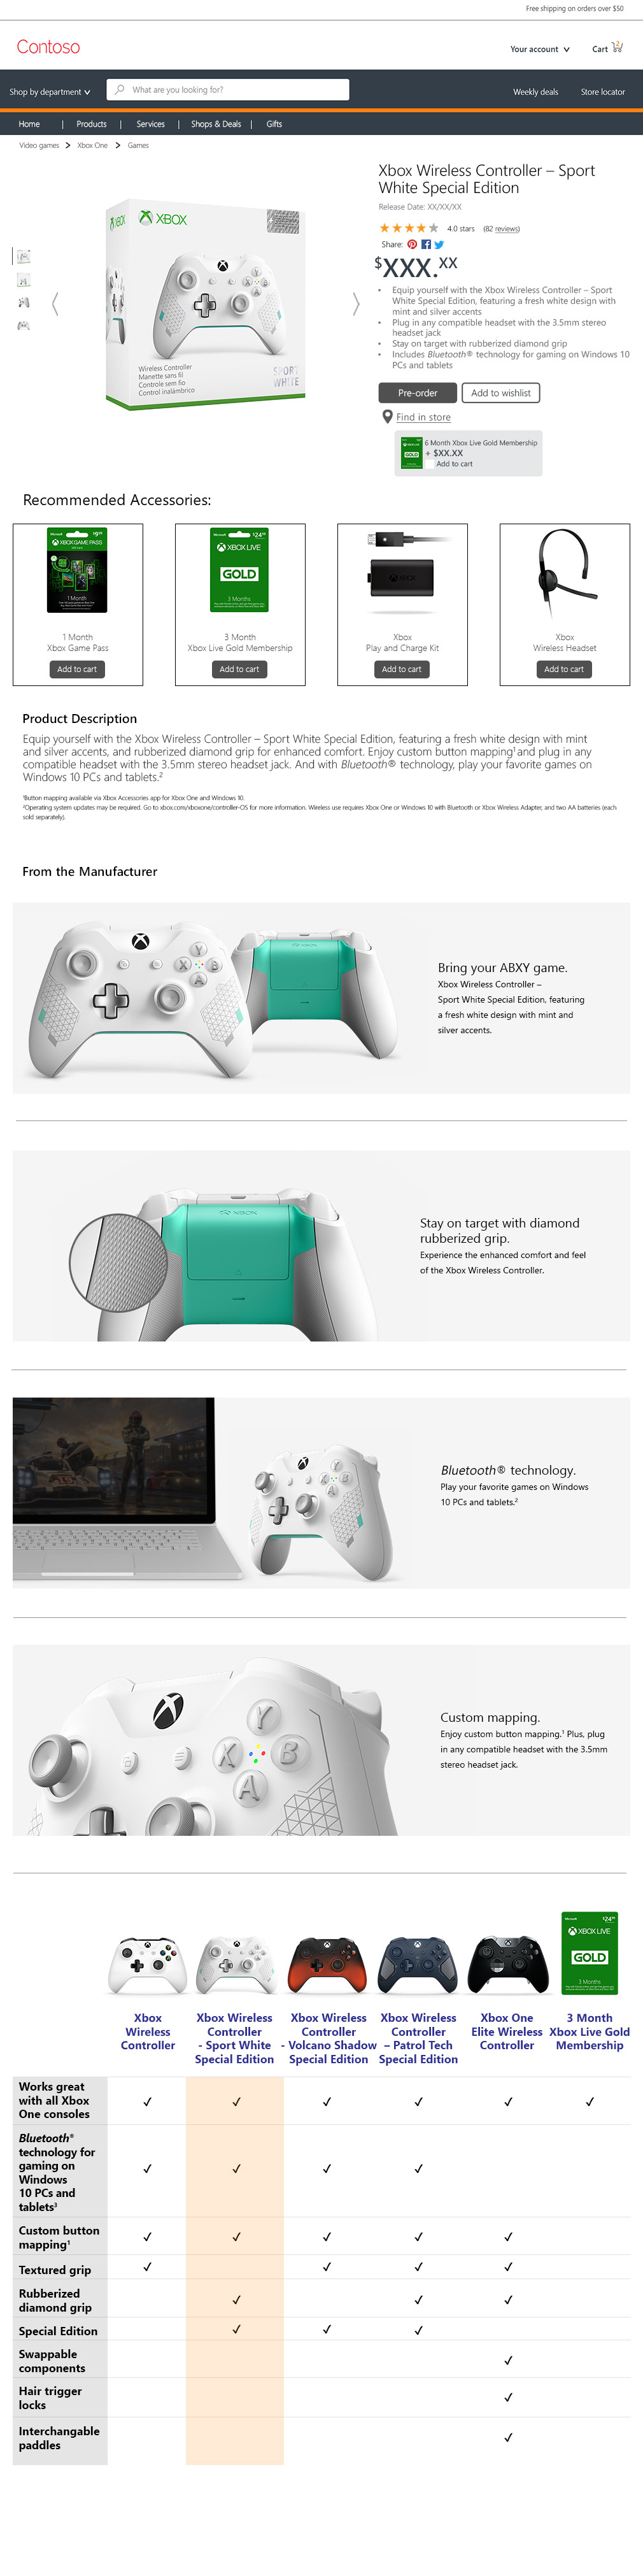 Hung Pham Visual Designer - Xbox assets for amazon & third